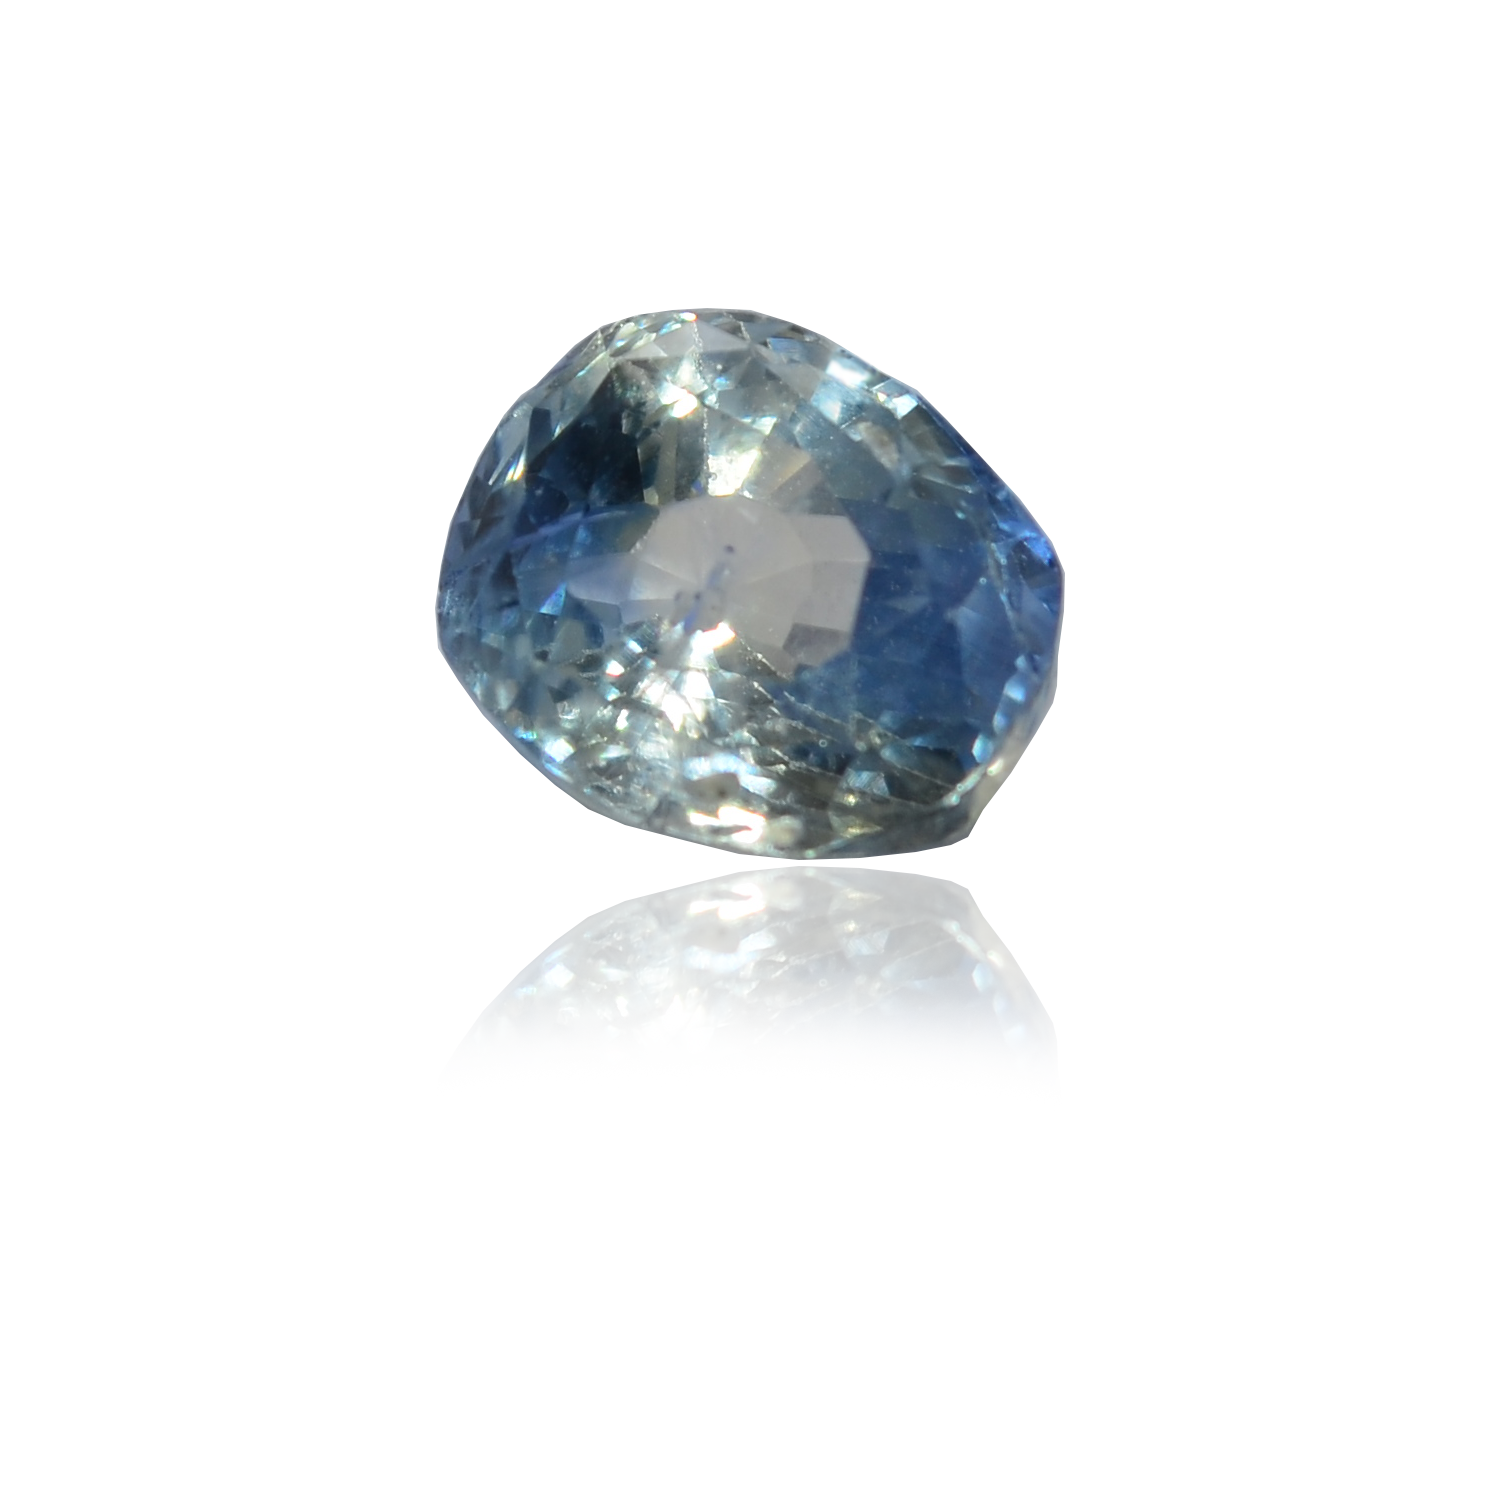 4.00 CARAT, OVAL MIXED CUT NATURAL BLUE SAPPHIRE